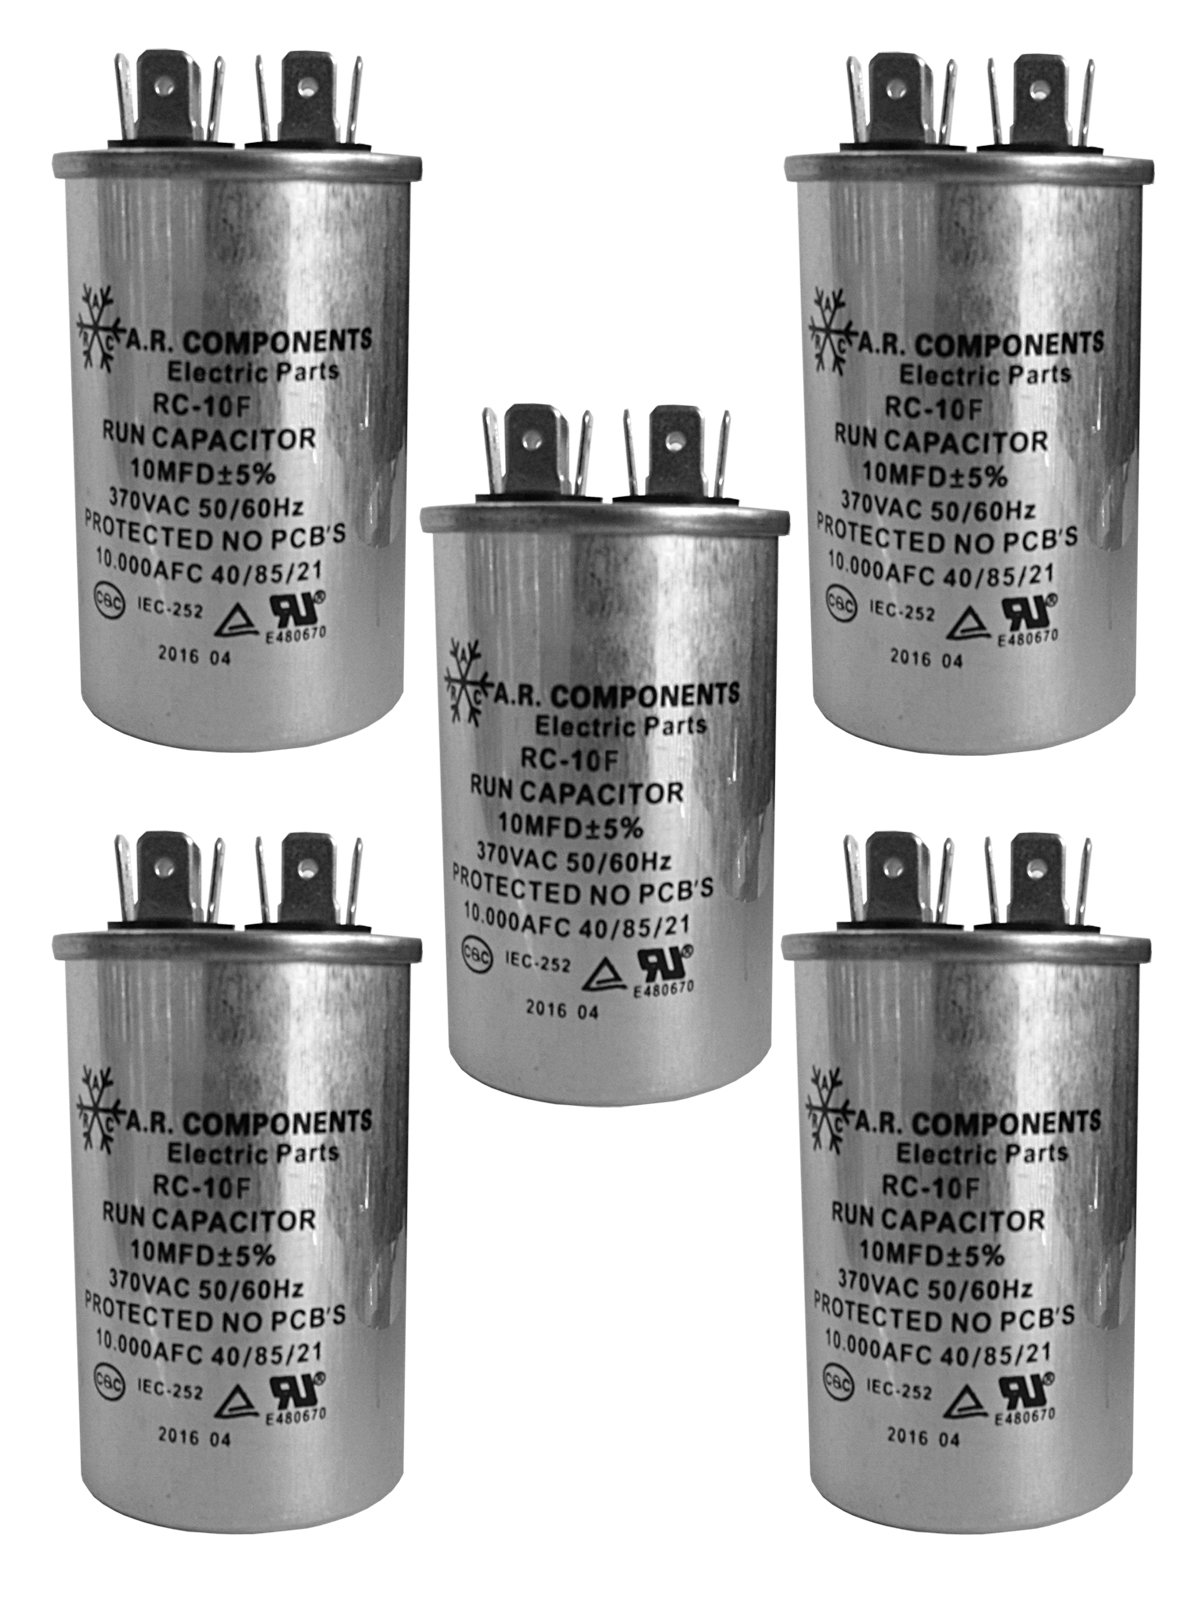 RUN CAPACITOR 10 MFD 370 VAC ROUND CAN. UL Certified. Pack of (5)